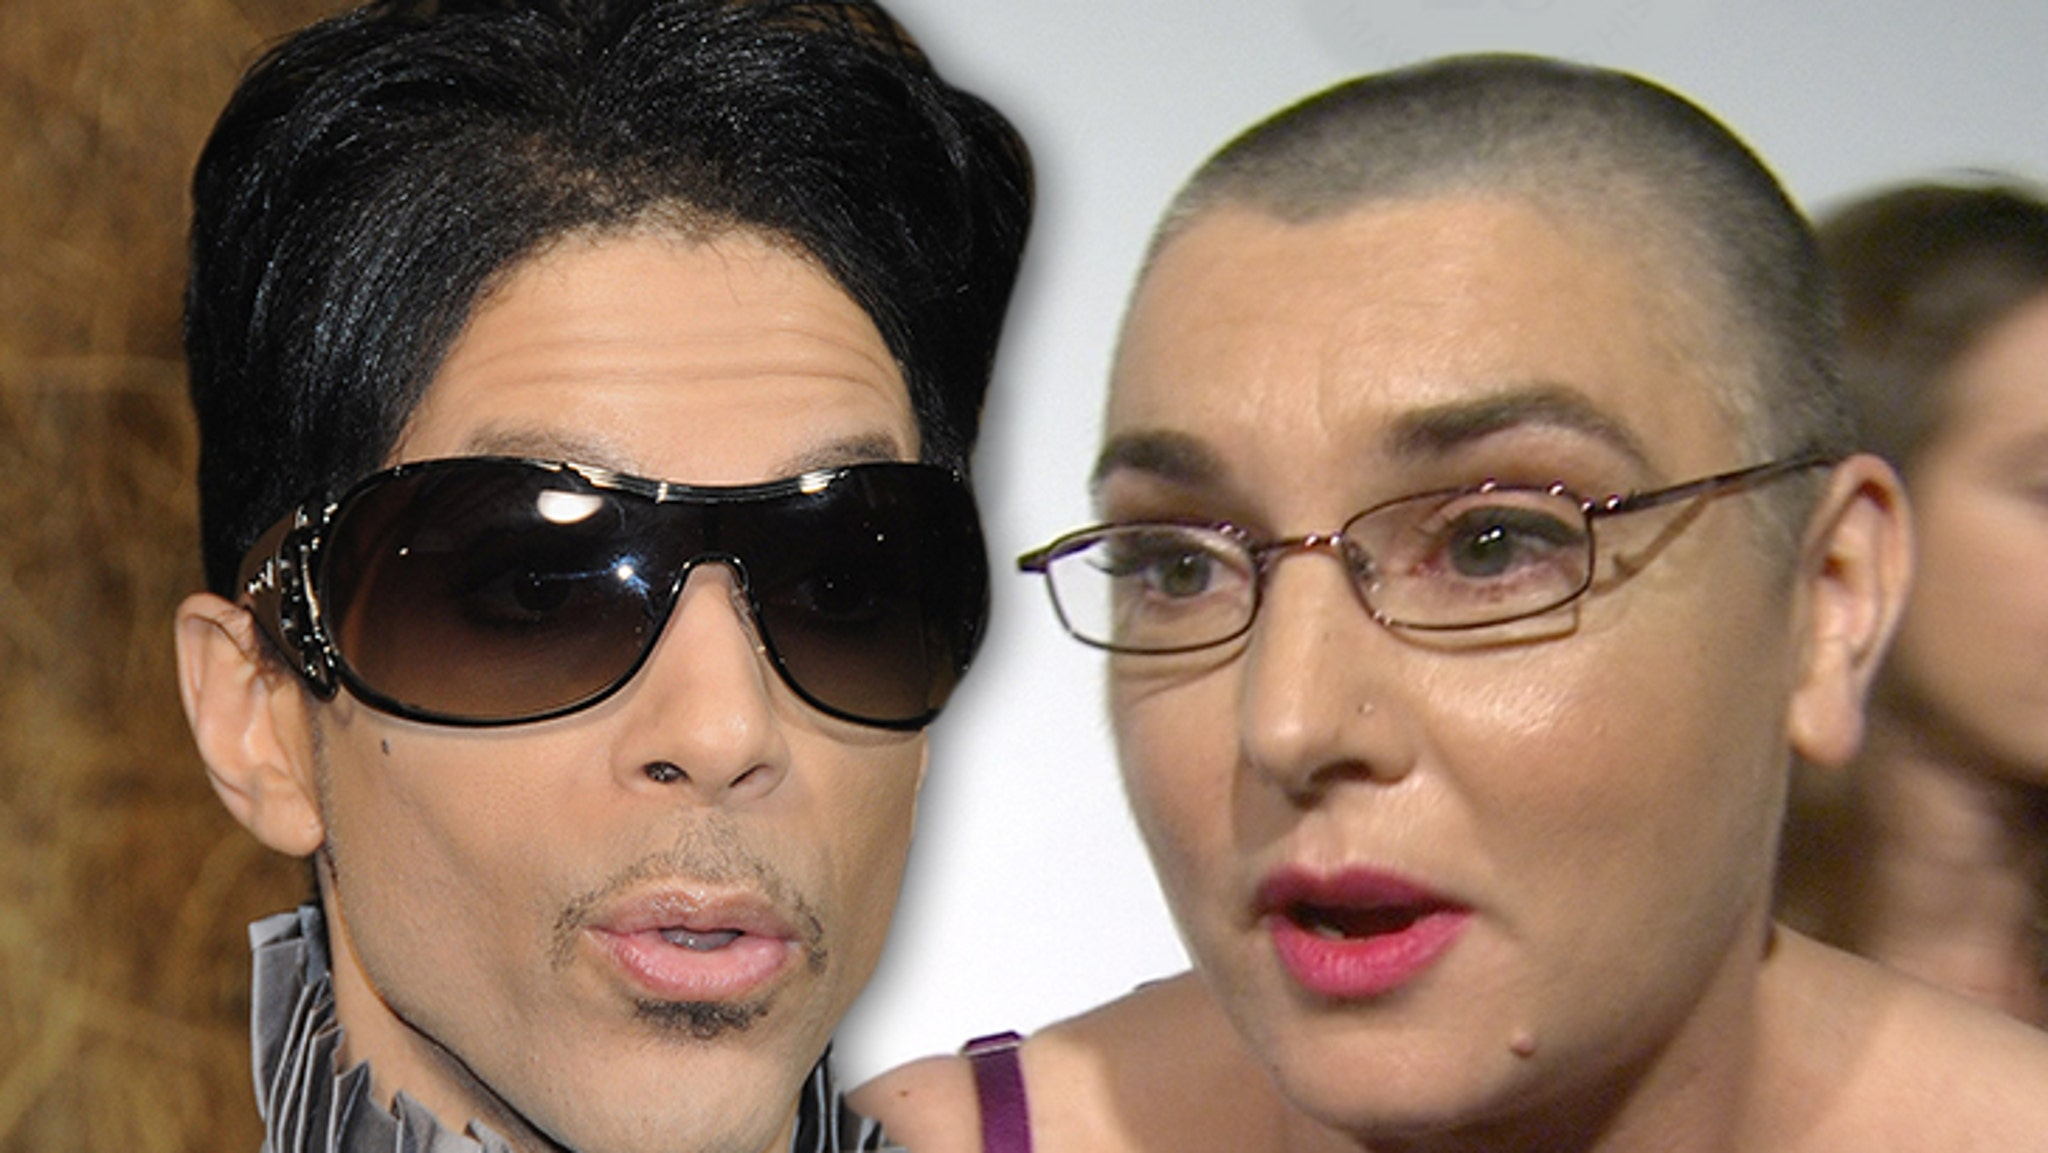 Prince's Ex-Wife Mayte Garcia Slams Sinead O'Connor for